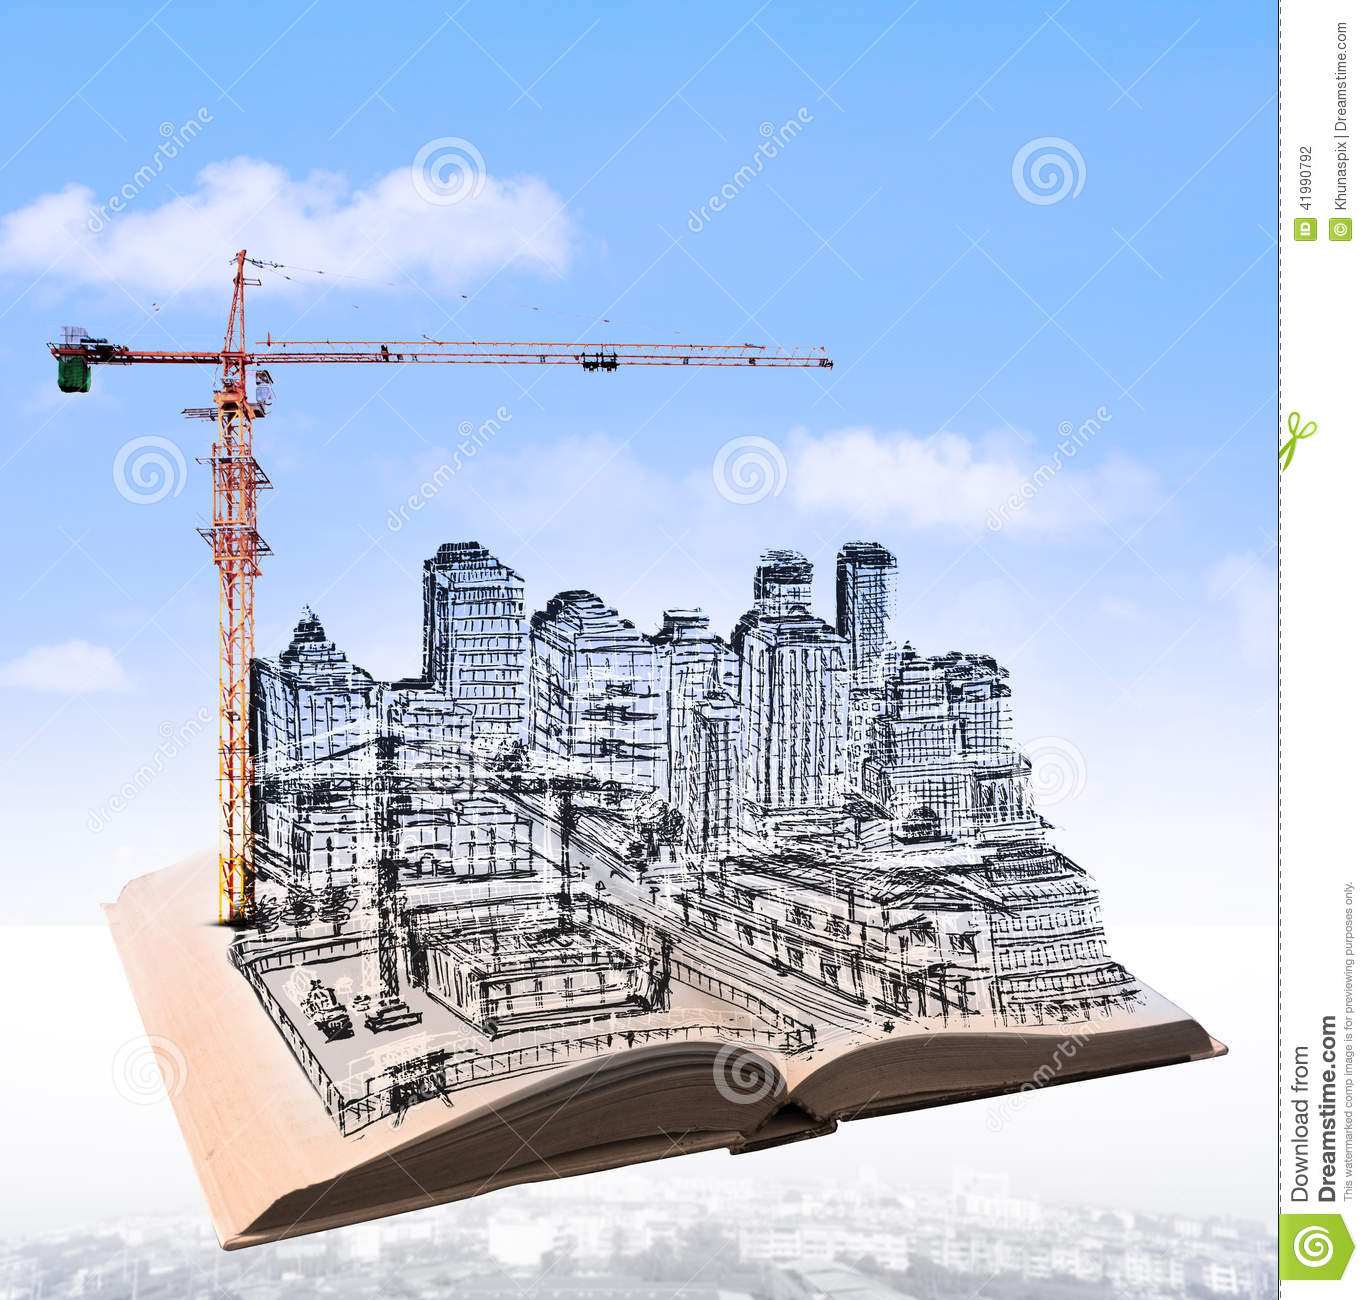 Construction Engineering Building And Sketching Of Building Construction On Flying Book Over Urban Scene